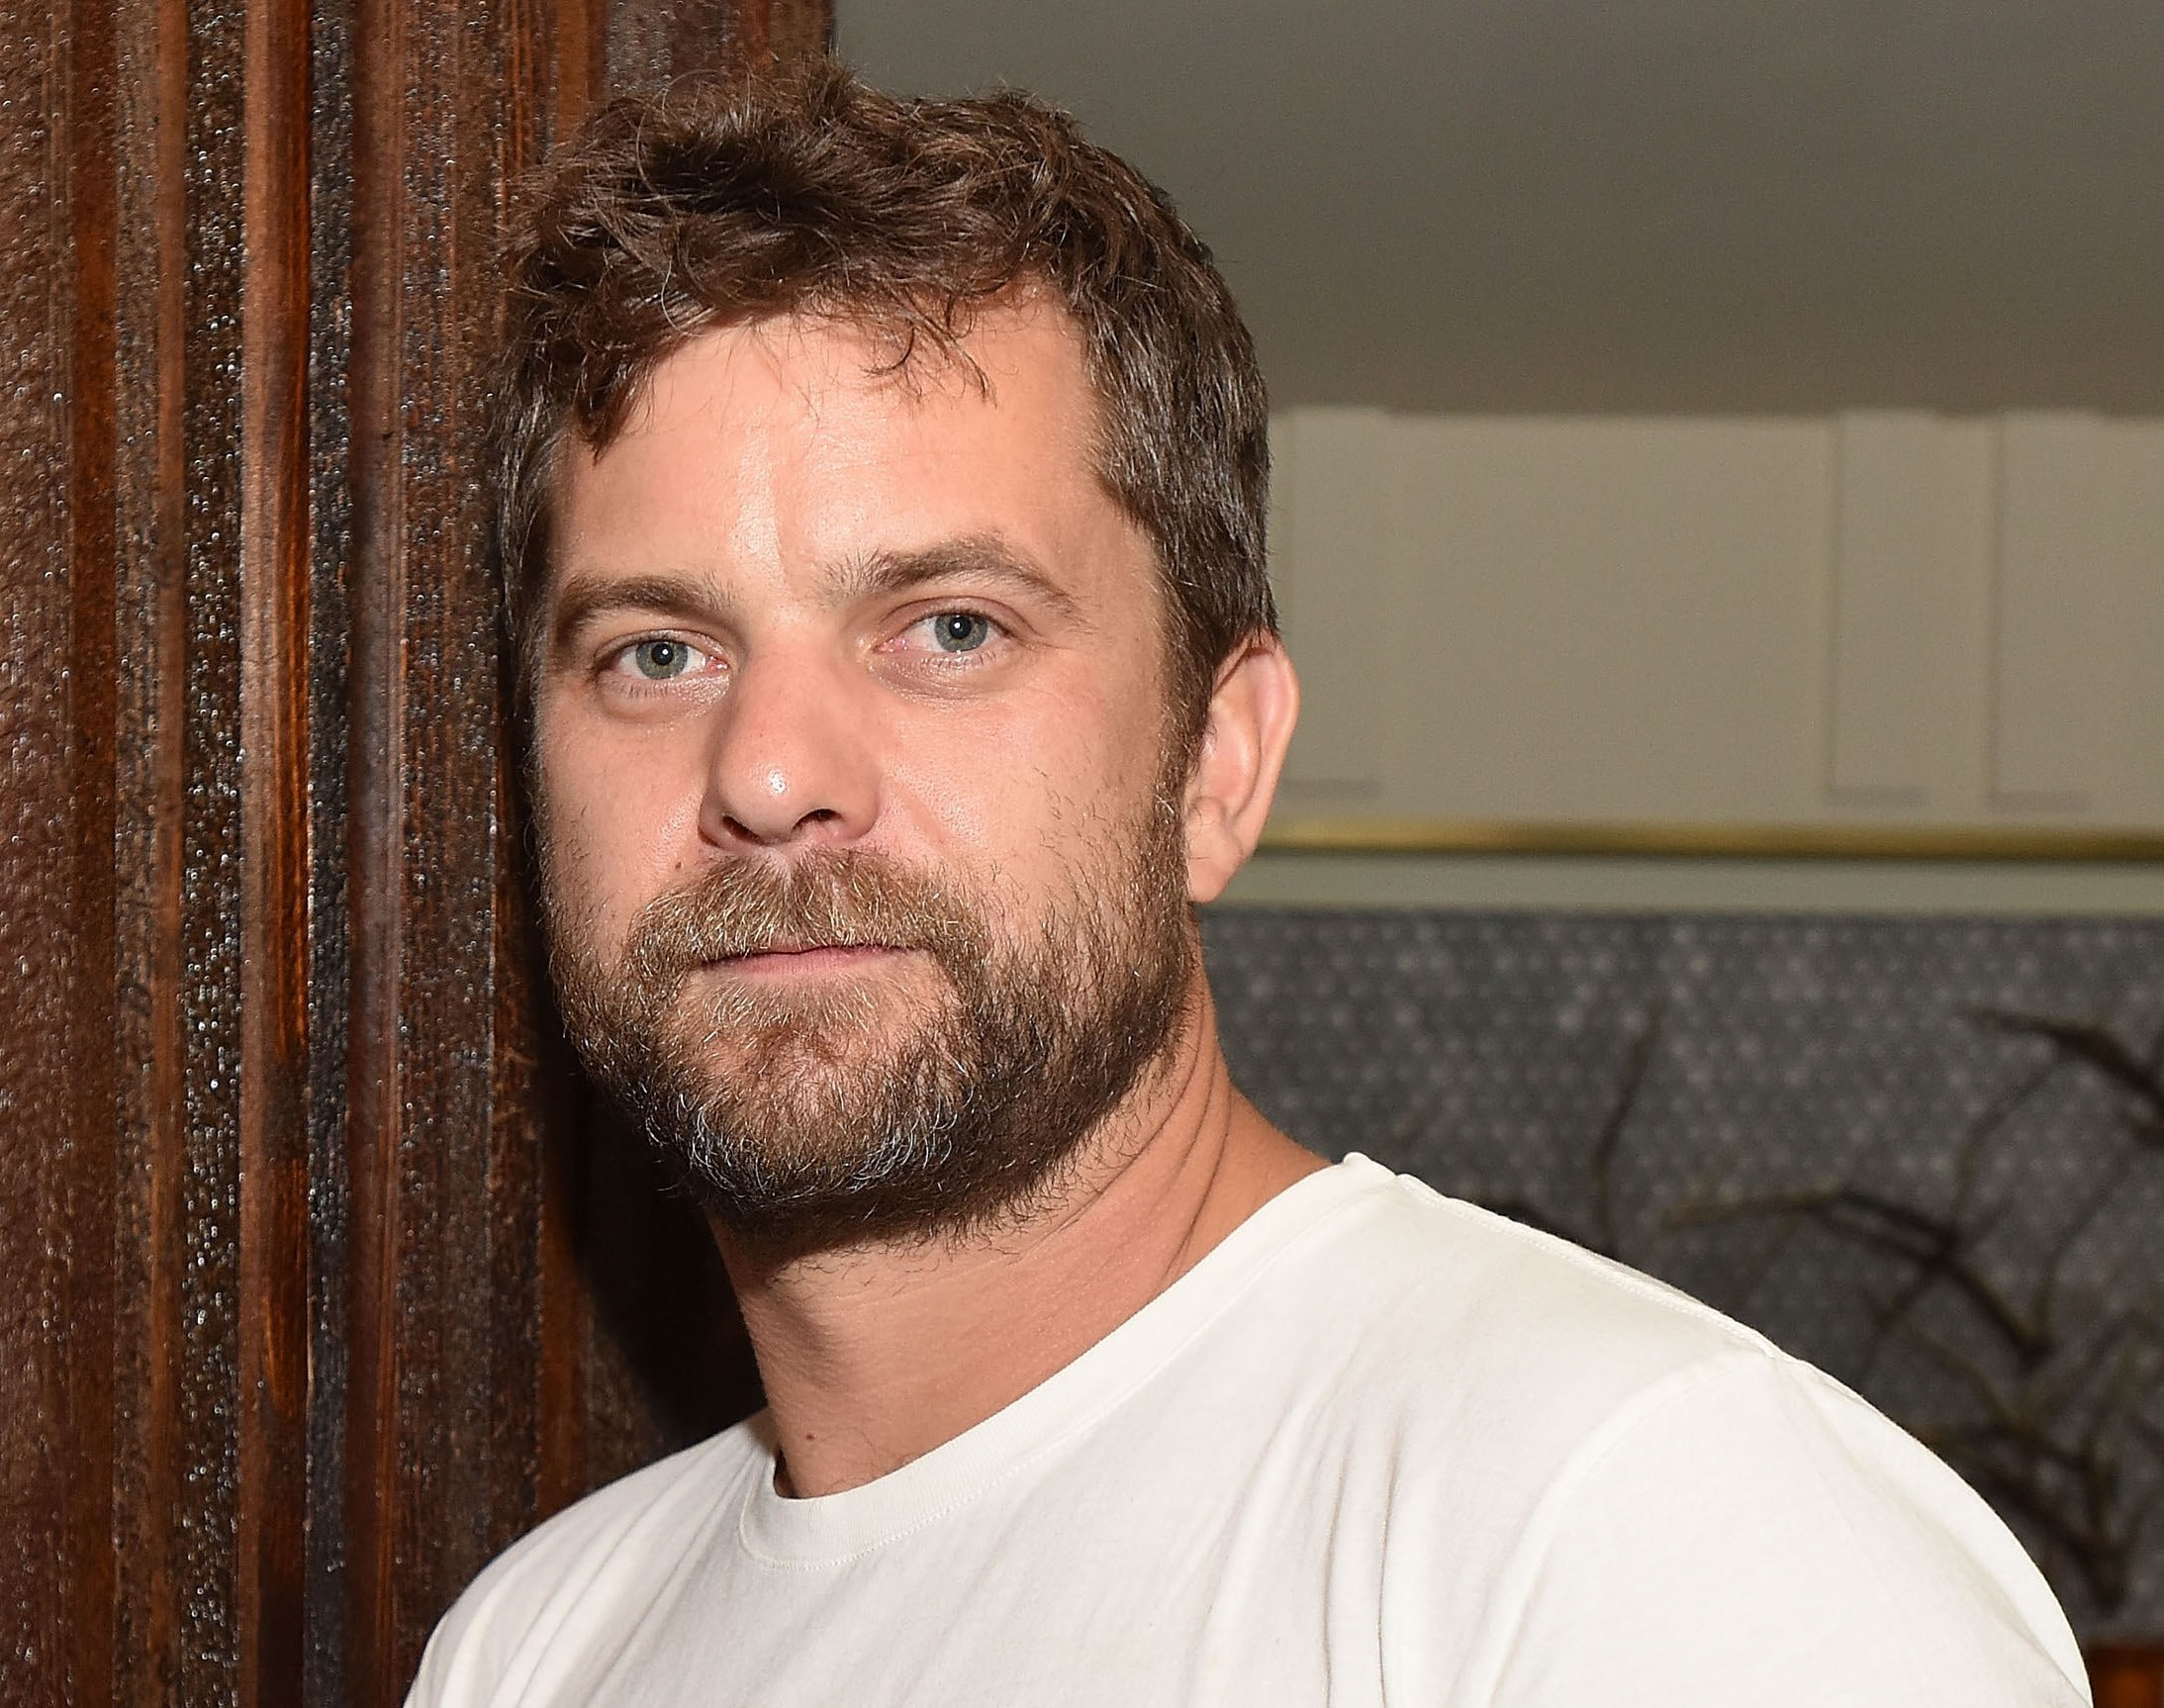 Joshua Jackson Wallpapers hd